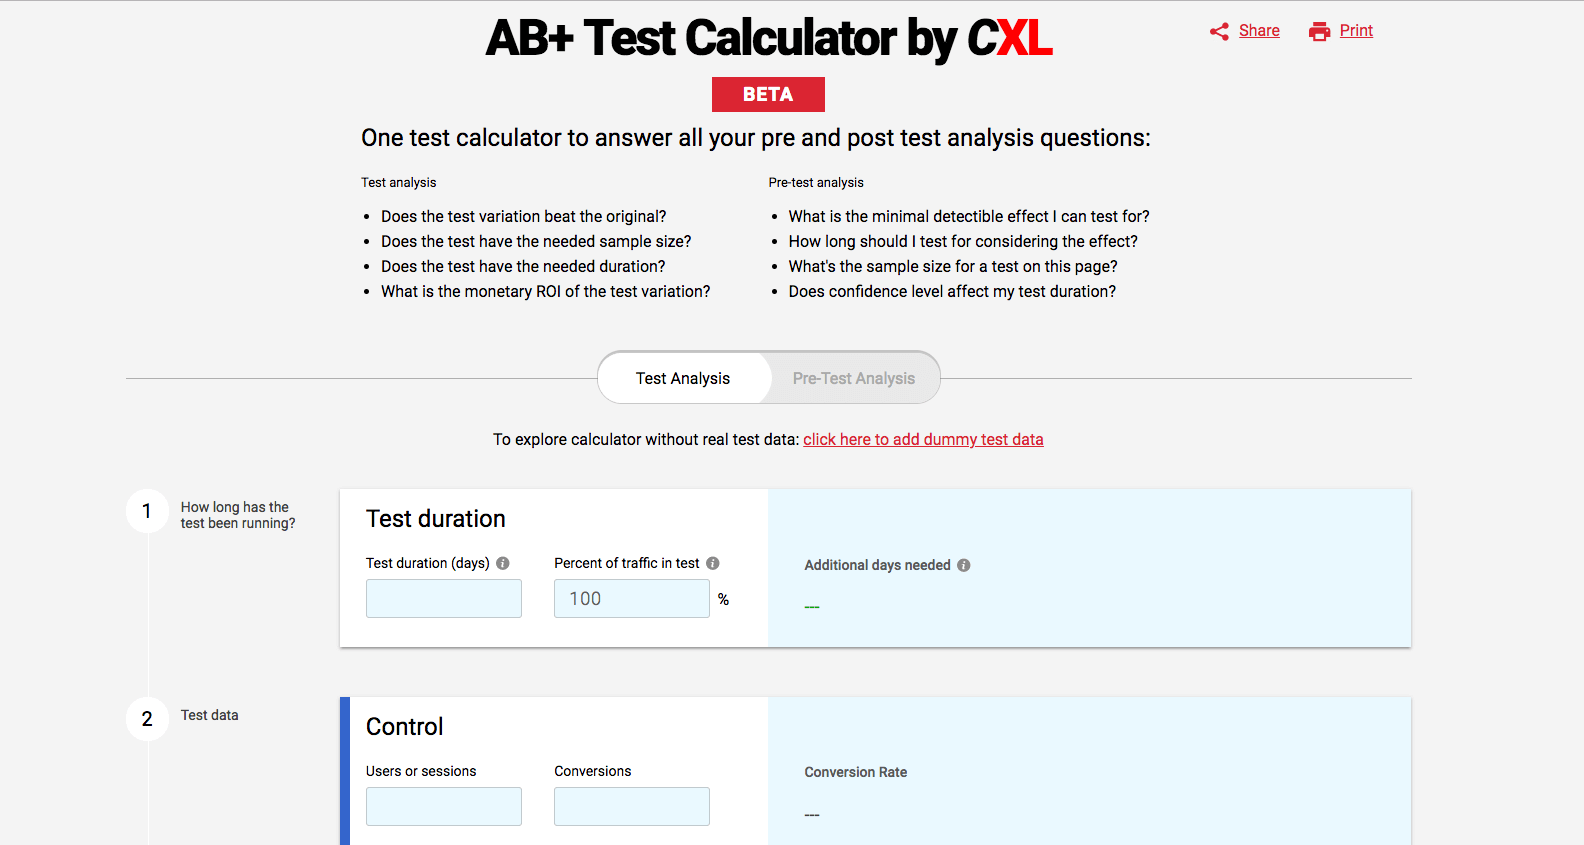 AB Test Calculator